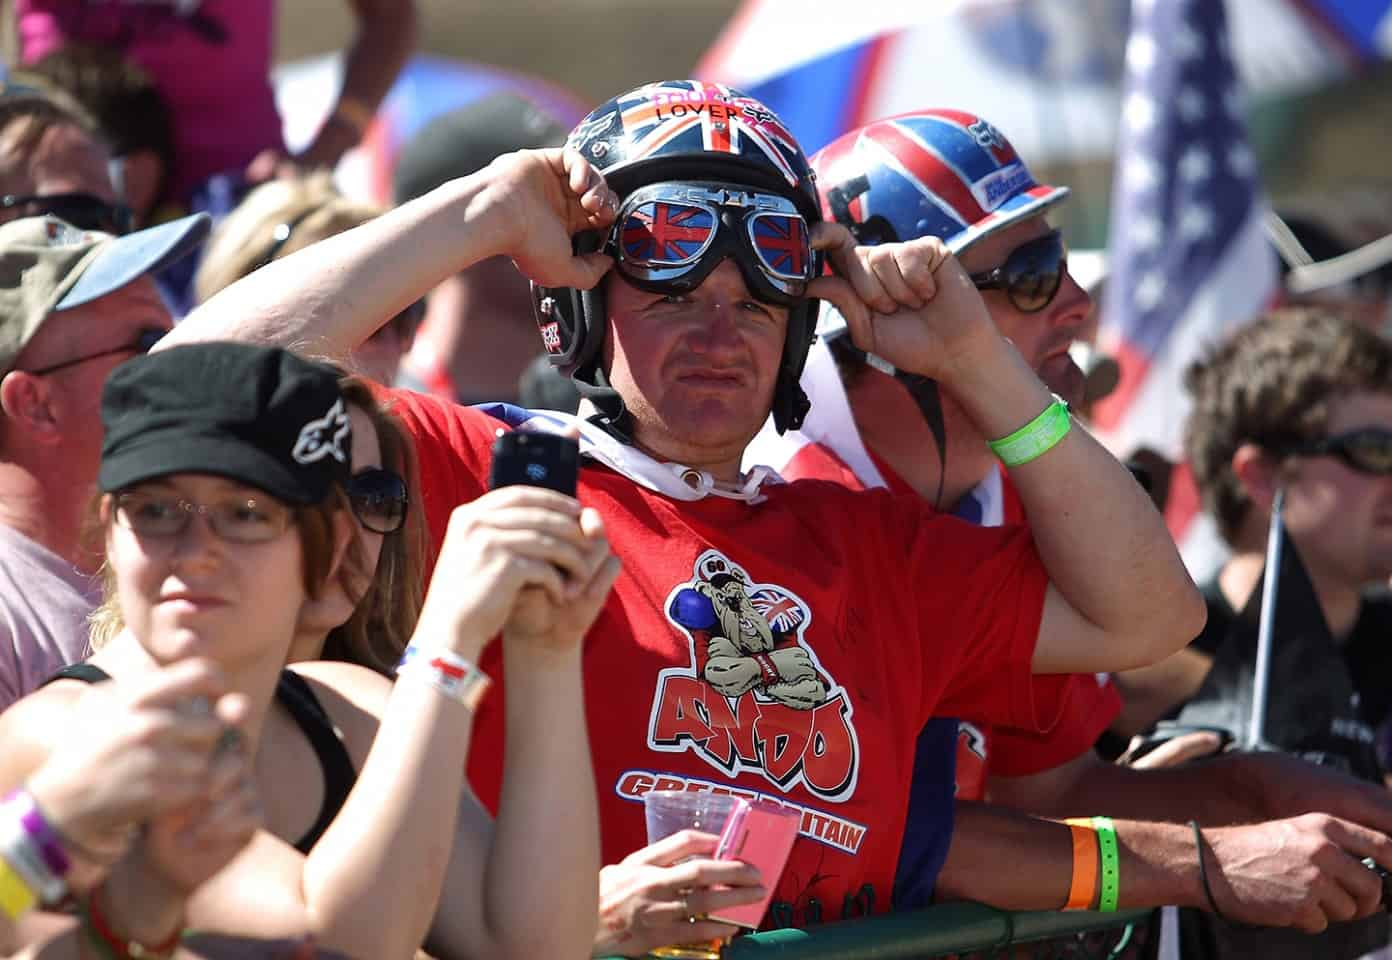 Motocoss of Nations 2010 in Lakewood, Colorado - Fans